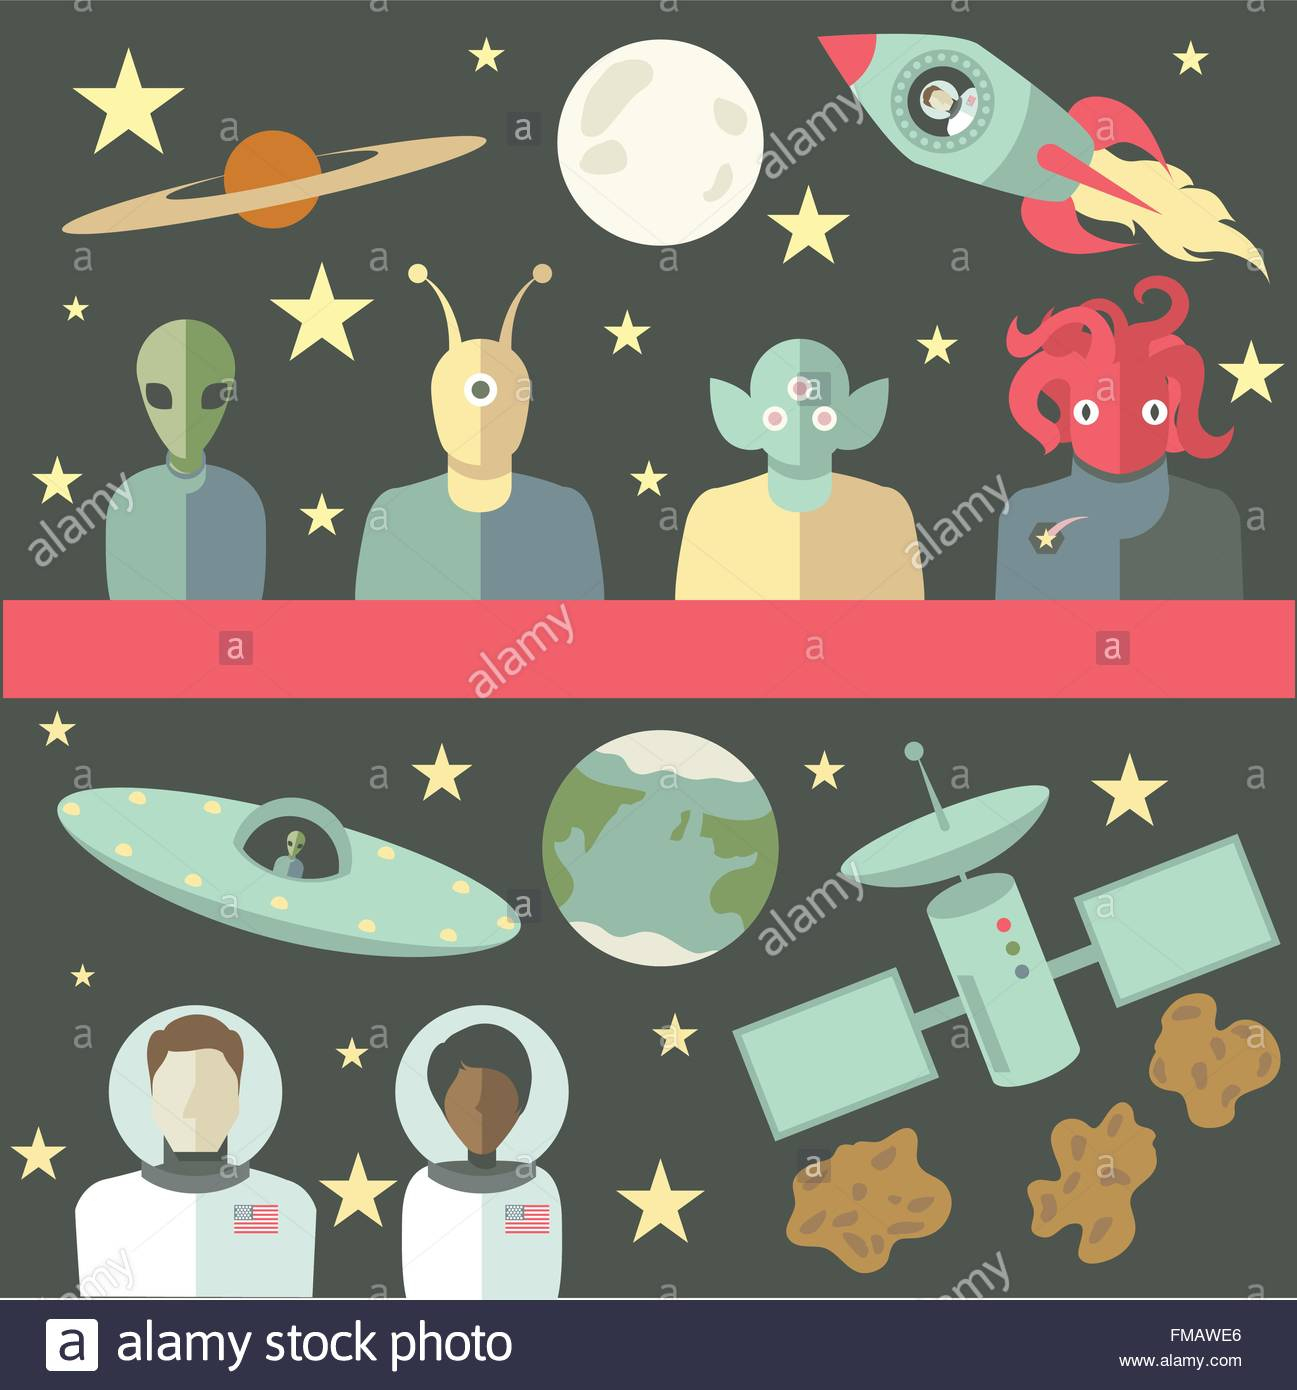 Eps Vector Of Outer Space Related Characters And Objects within Space Related Pictures